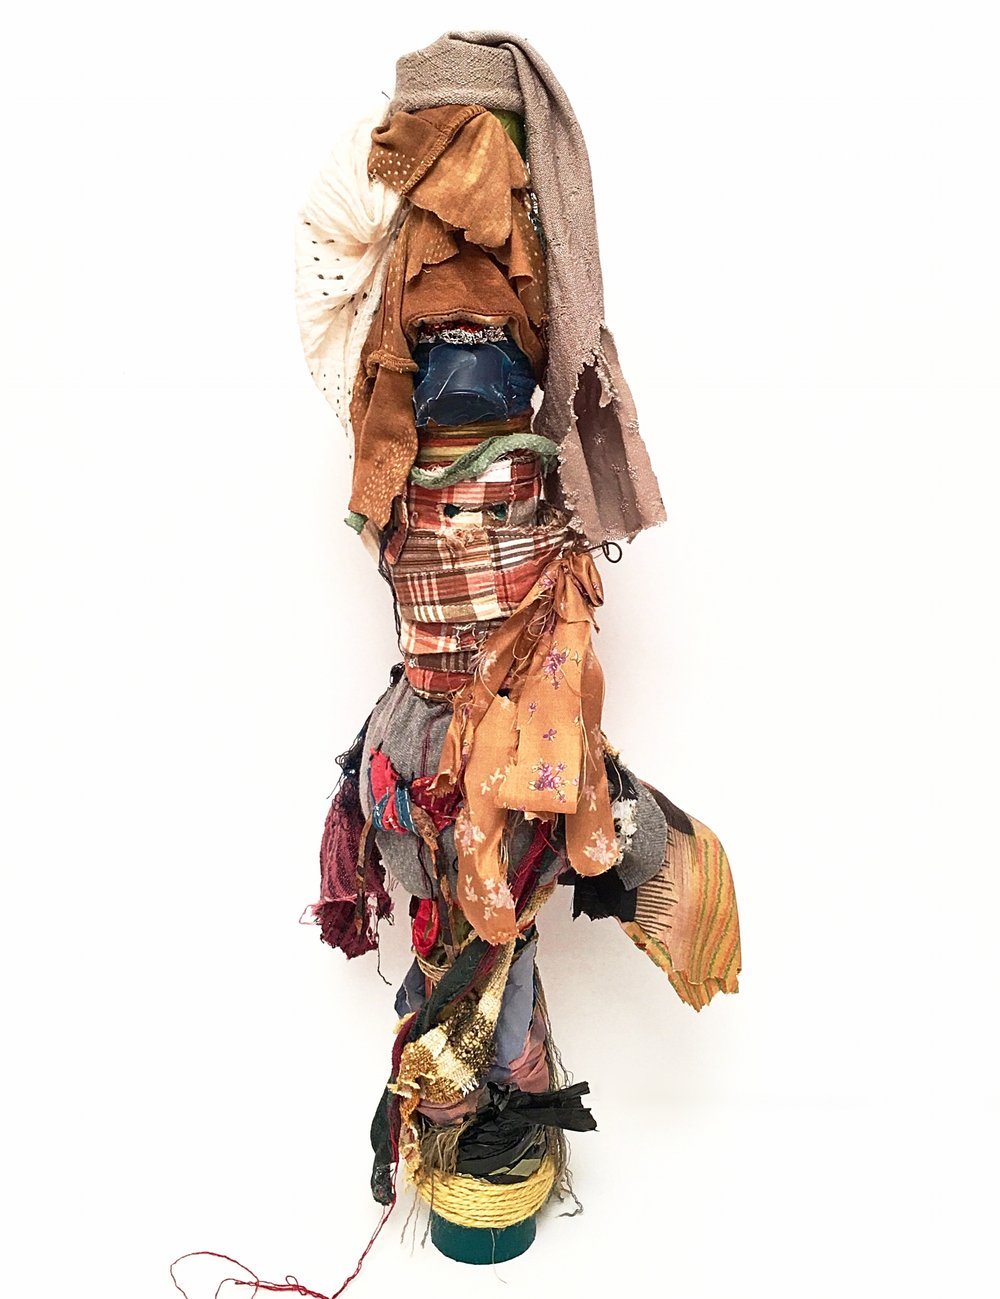 """Tall Hat   Textile, rust, cord, antique India fabric, scraps from Bosnia and Japan, plastic, foil, paper, ribbon, thread, yarn, acrylic on industrial cardboard tube  24½ x 10 x 7½""""  2016-2019"""